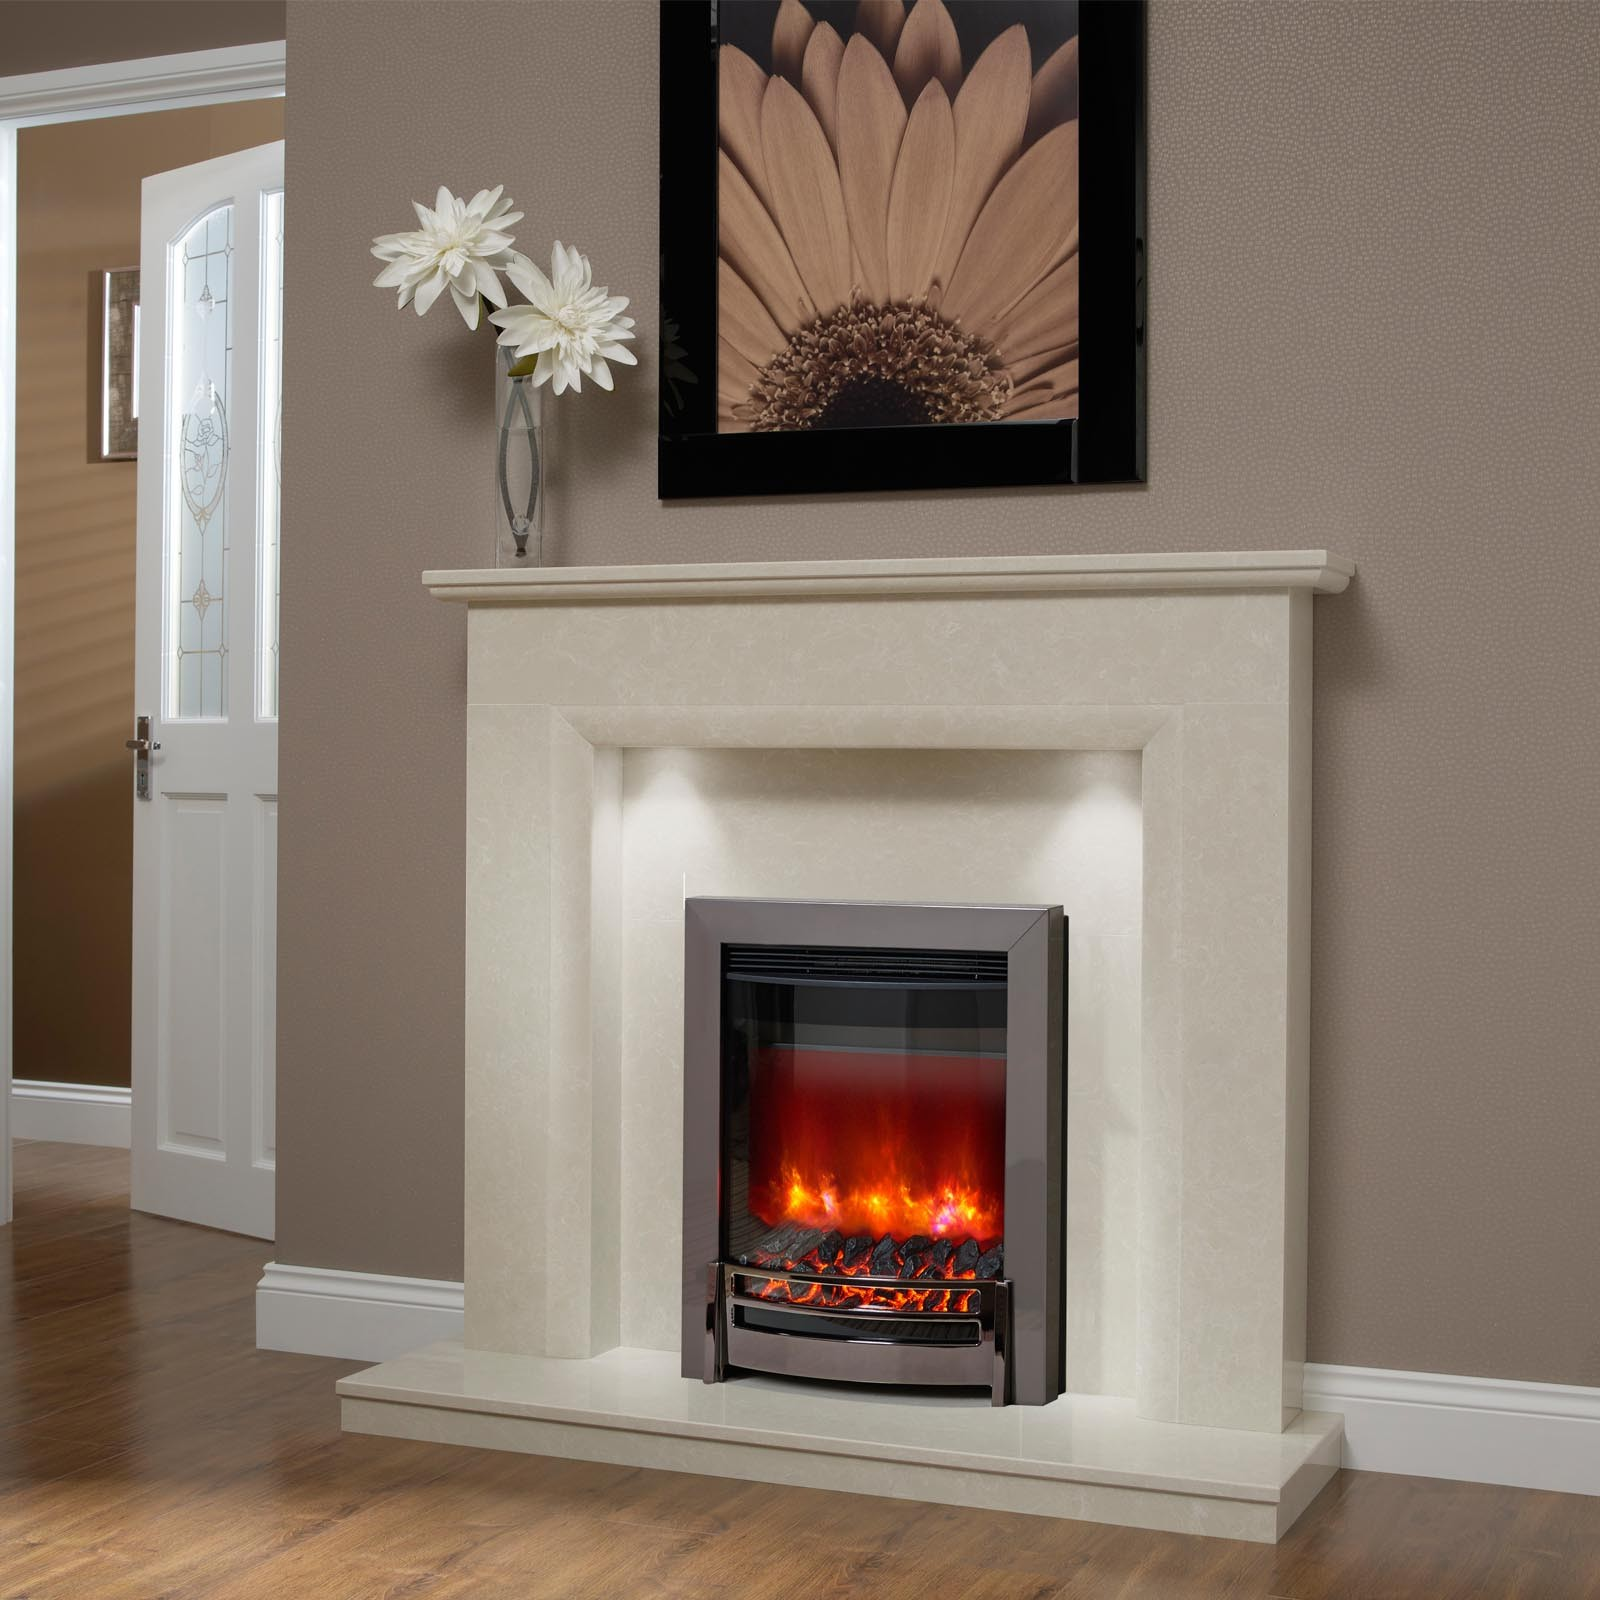 Surprising Elgin Hall Roesia Micro Marble Fire Surround Interior Design Ideas Tzicisoteloinfo